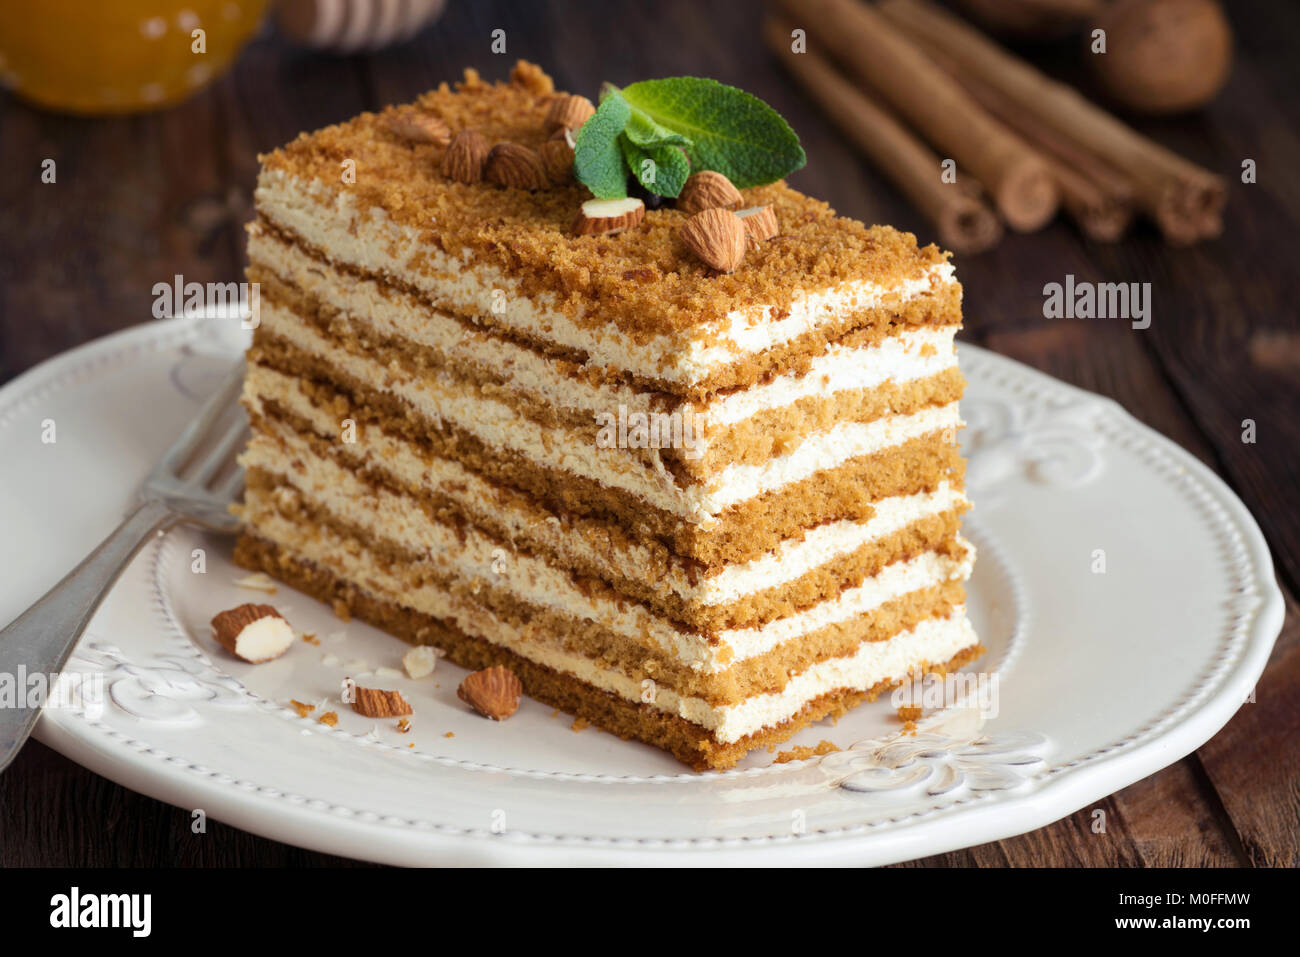 Honey layer cake Medovik decorated with mint leaf and almonds. Russian honey cake. Closeup view - Stock Image